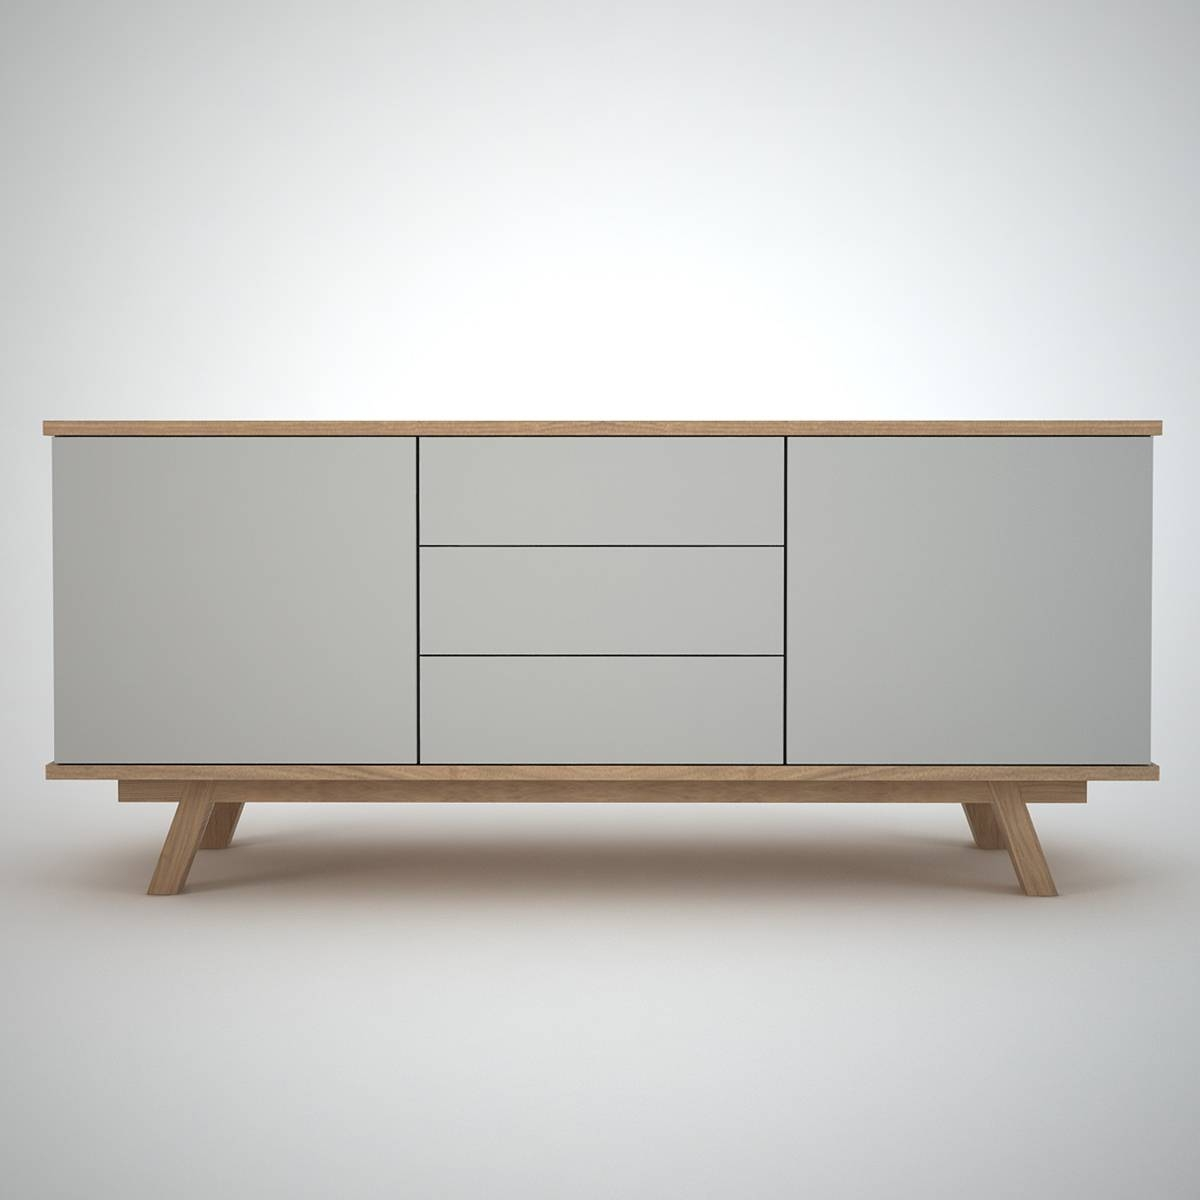 Ottawa Sideboard (2+3) Clay - Join Furniture pertaining to Contemporary Sideboards (Image 23 of 30)